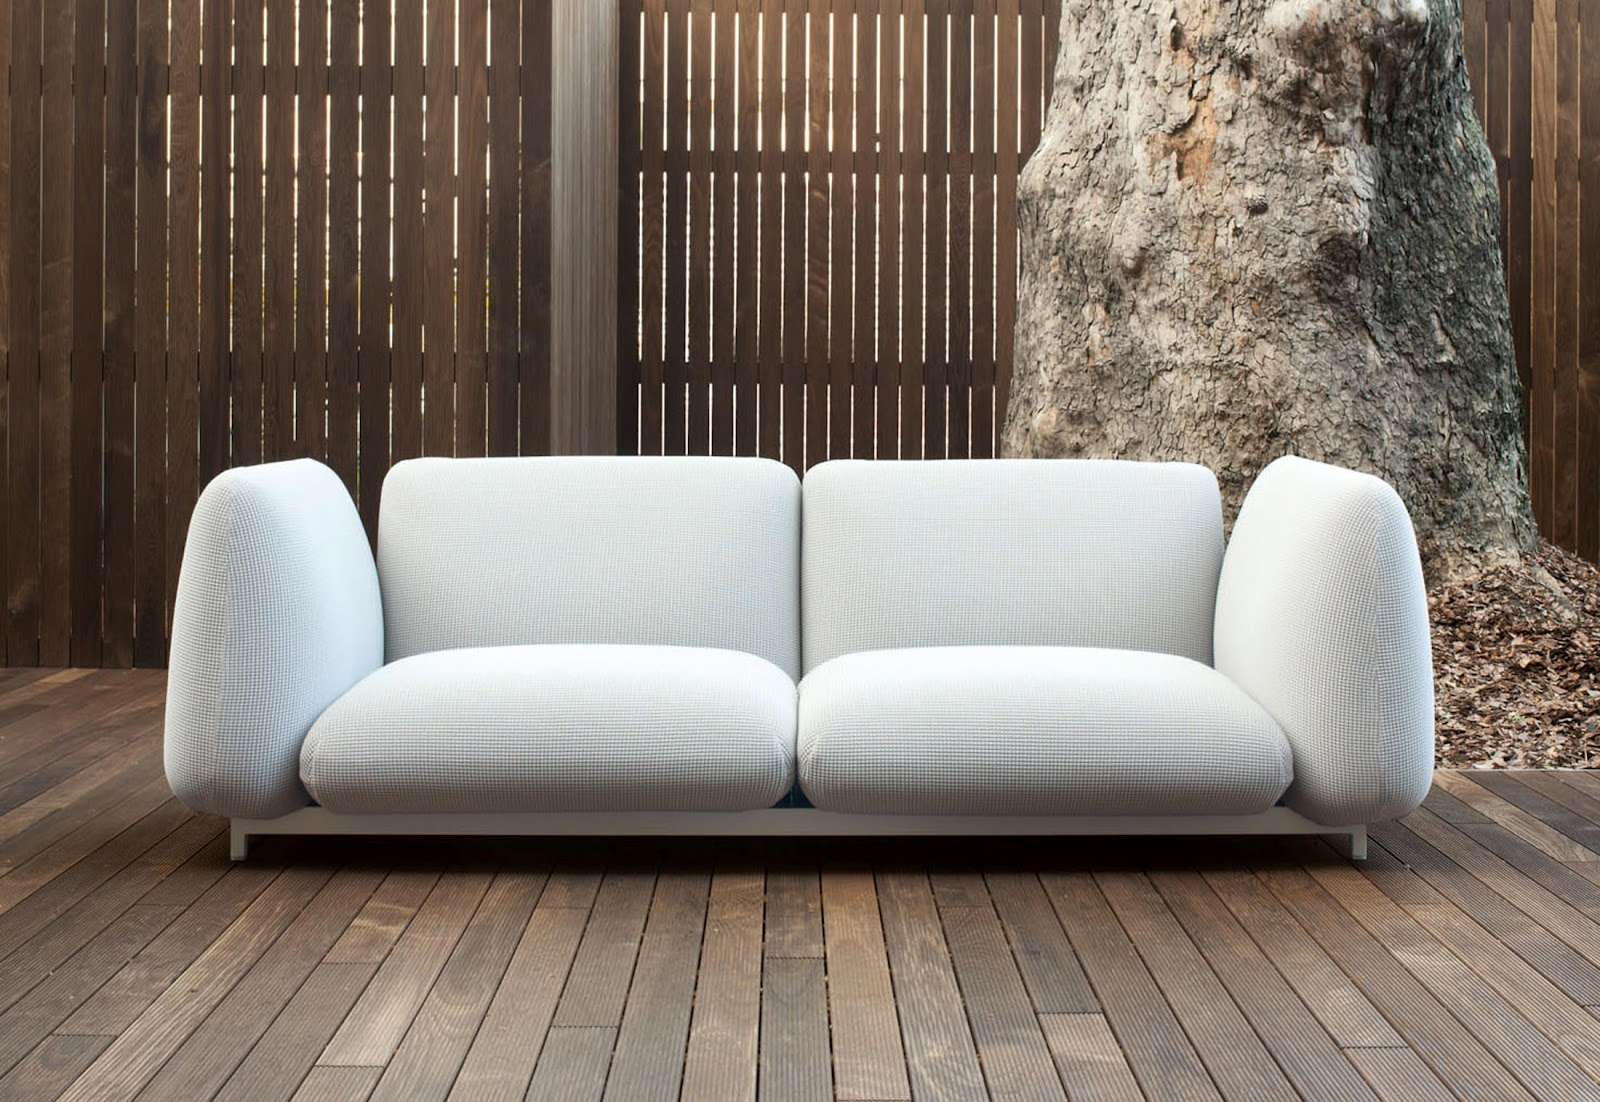 Mellow Sofa By Paola Lenti Designer Furniture Fitted